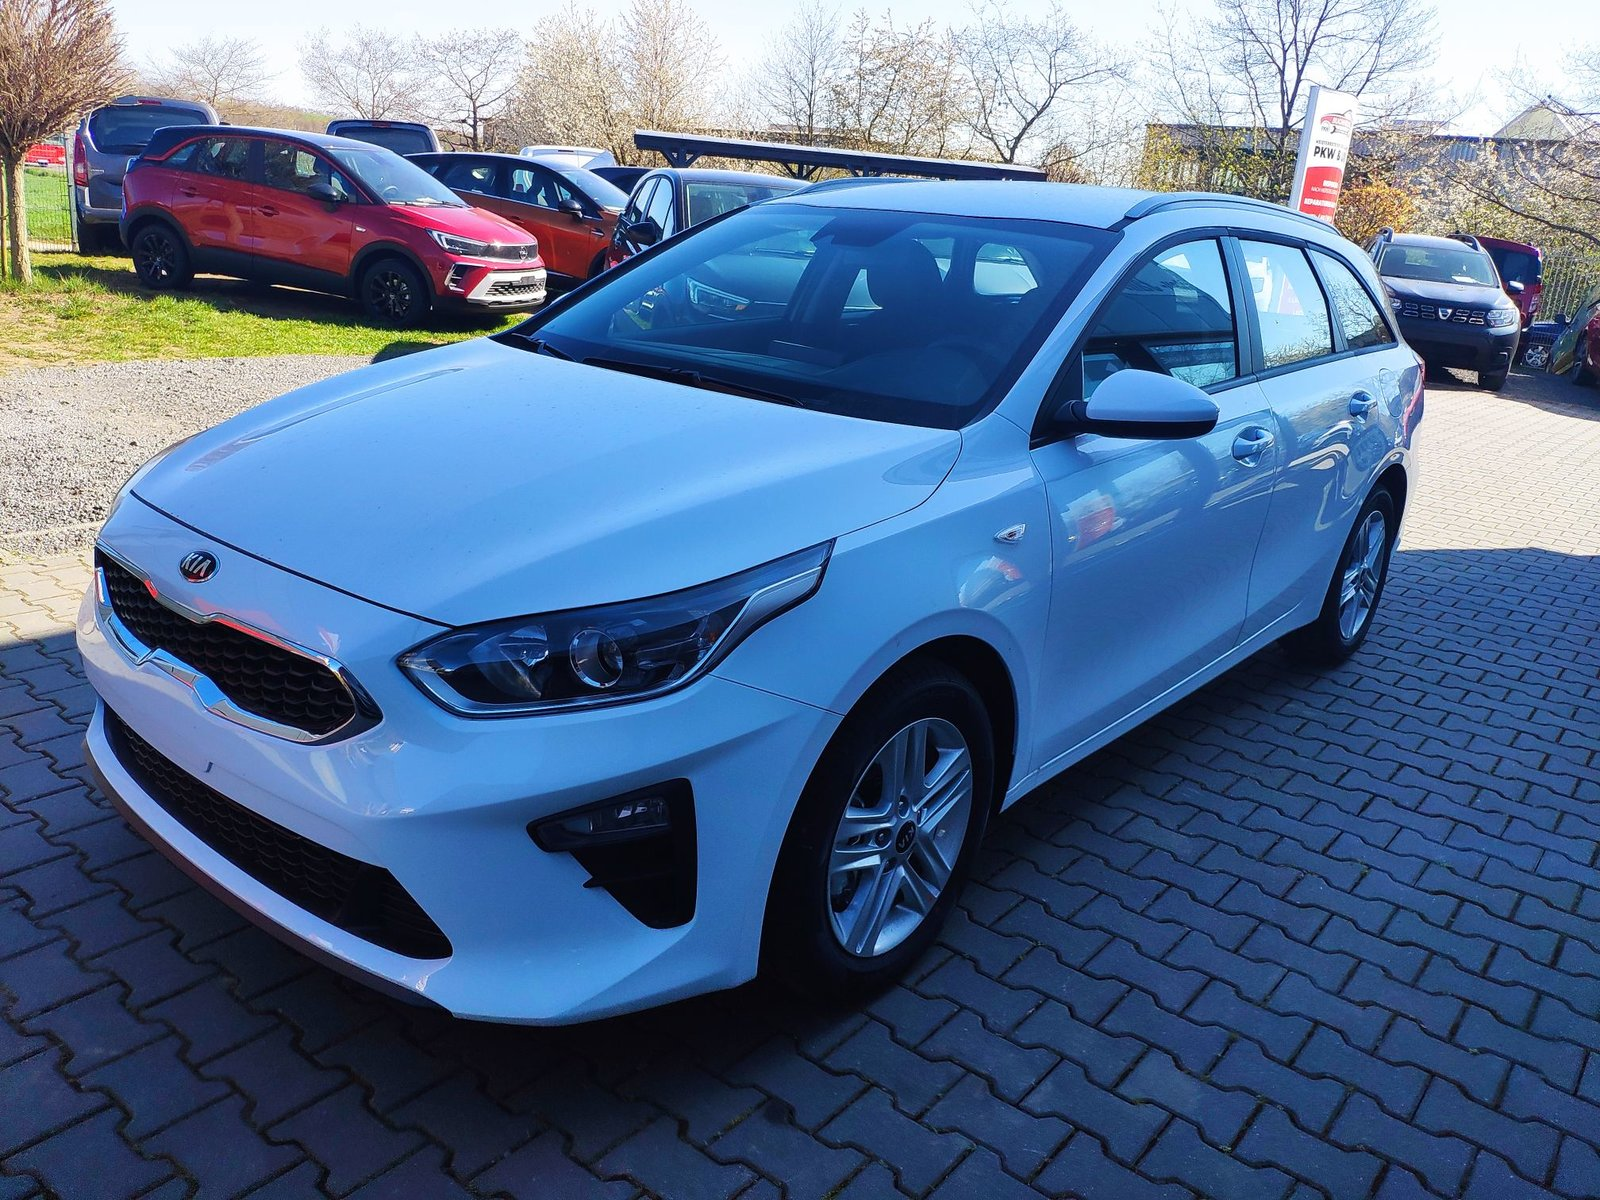 KIA CEED Cee'd 160PS SW Kamera*Sitzheizung*App-Connect! Autosoft BV, Enschede